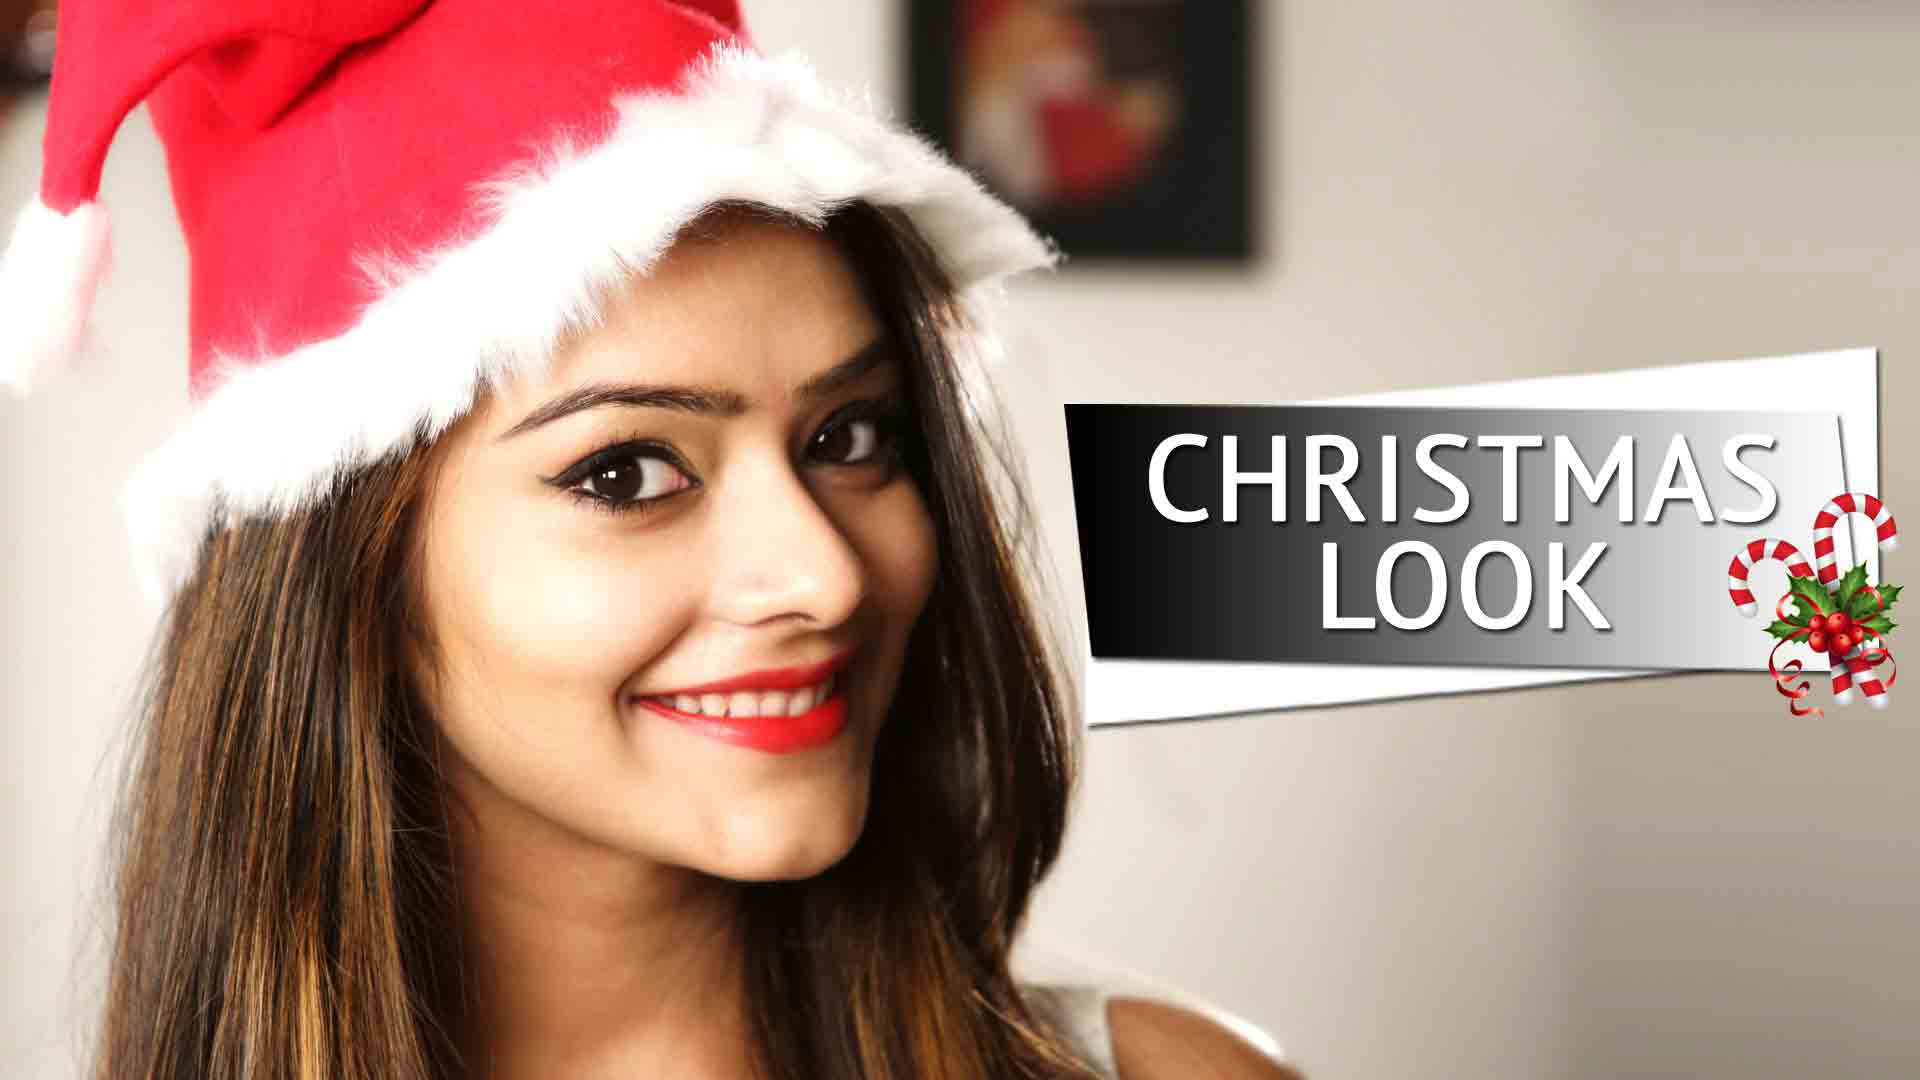 Christmas Makeup Ideas For Women In 2019